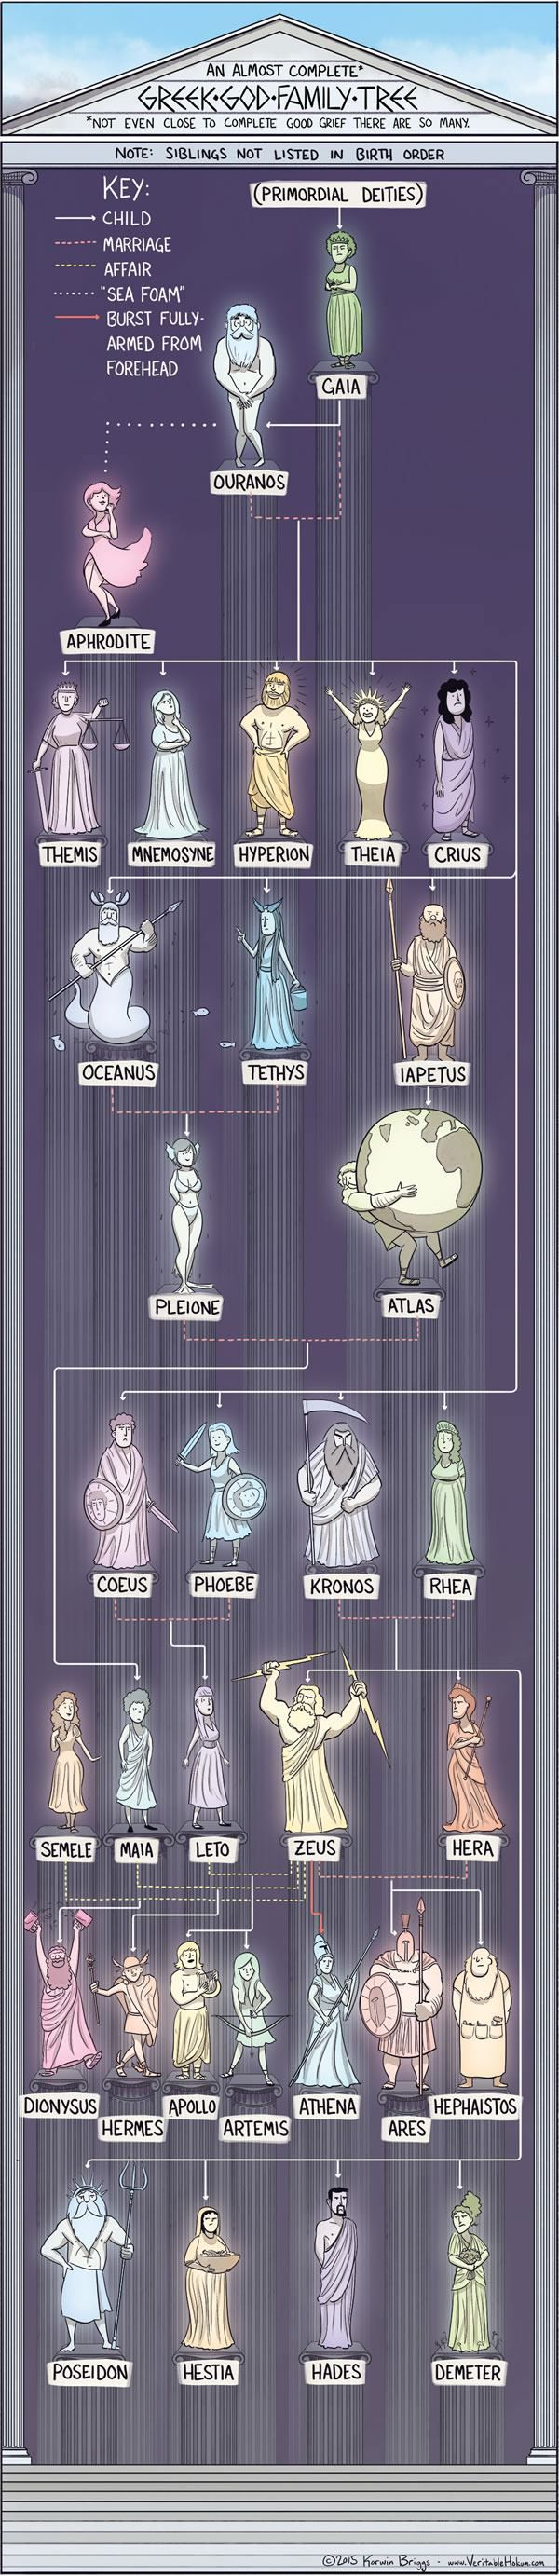 17 best ideas about greek mythology greek gods an almost sort of complete greek god family tree though there are wayyyy